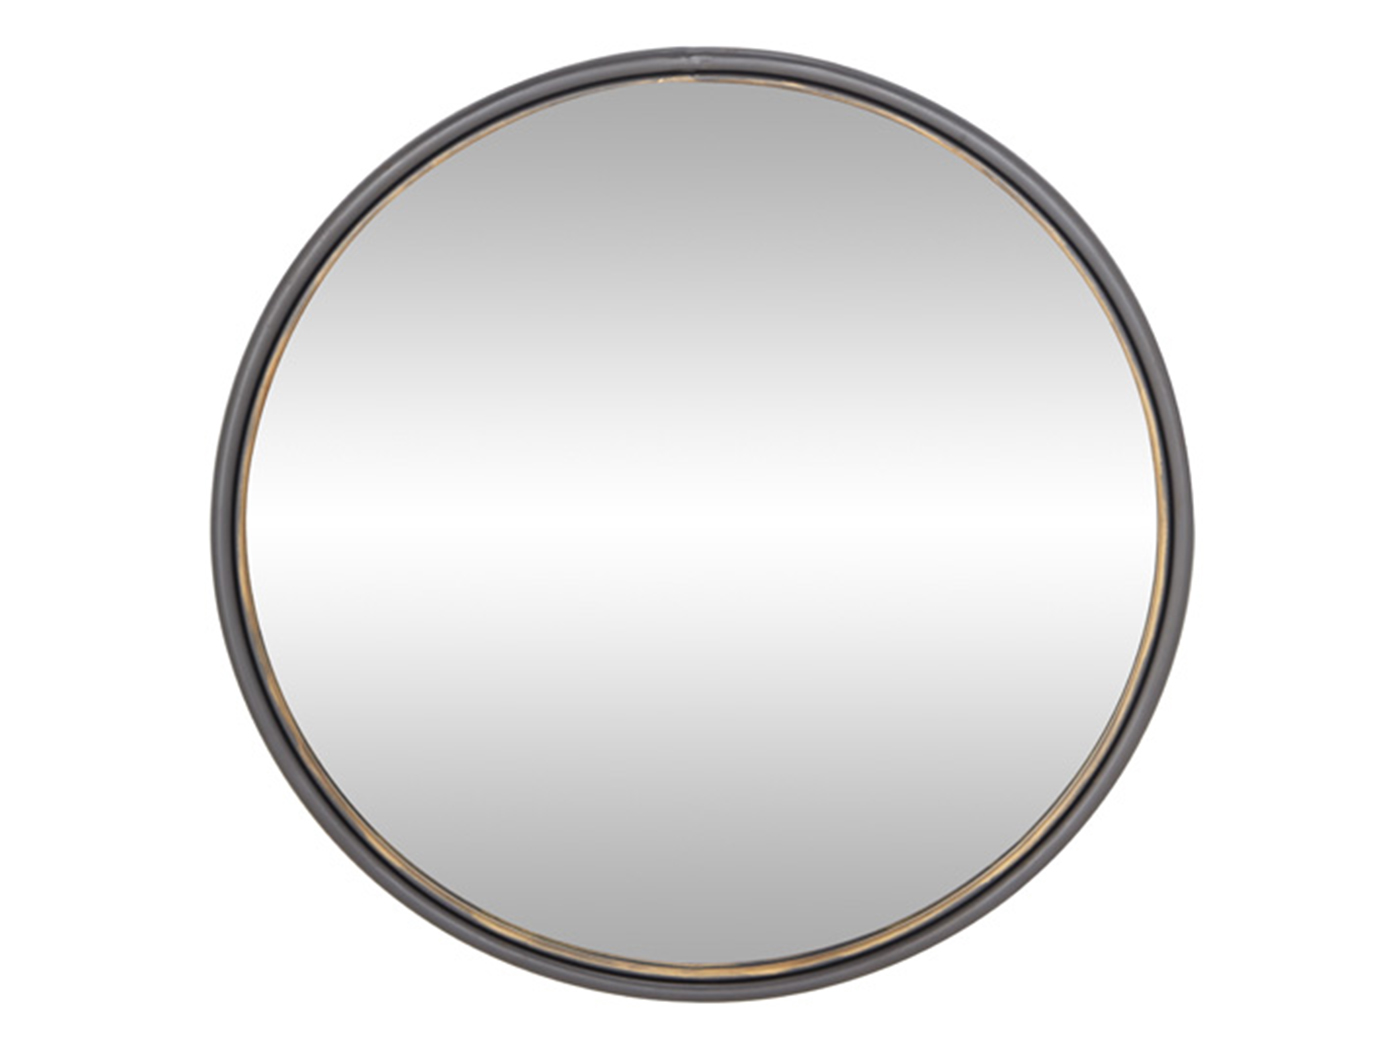 Brass and Bronze Rim Round Wall Mirror 35""